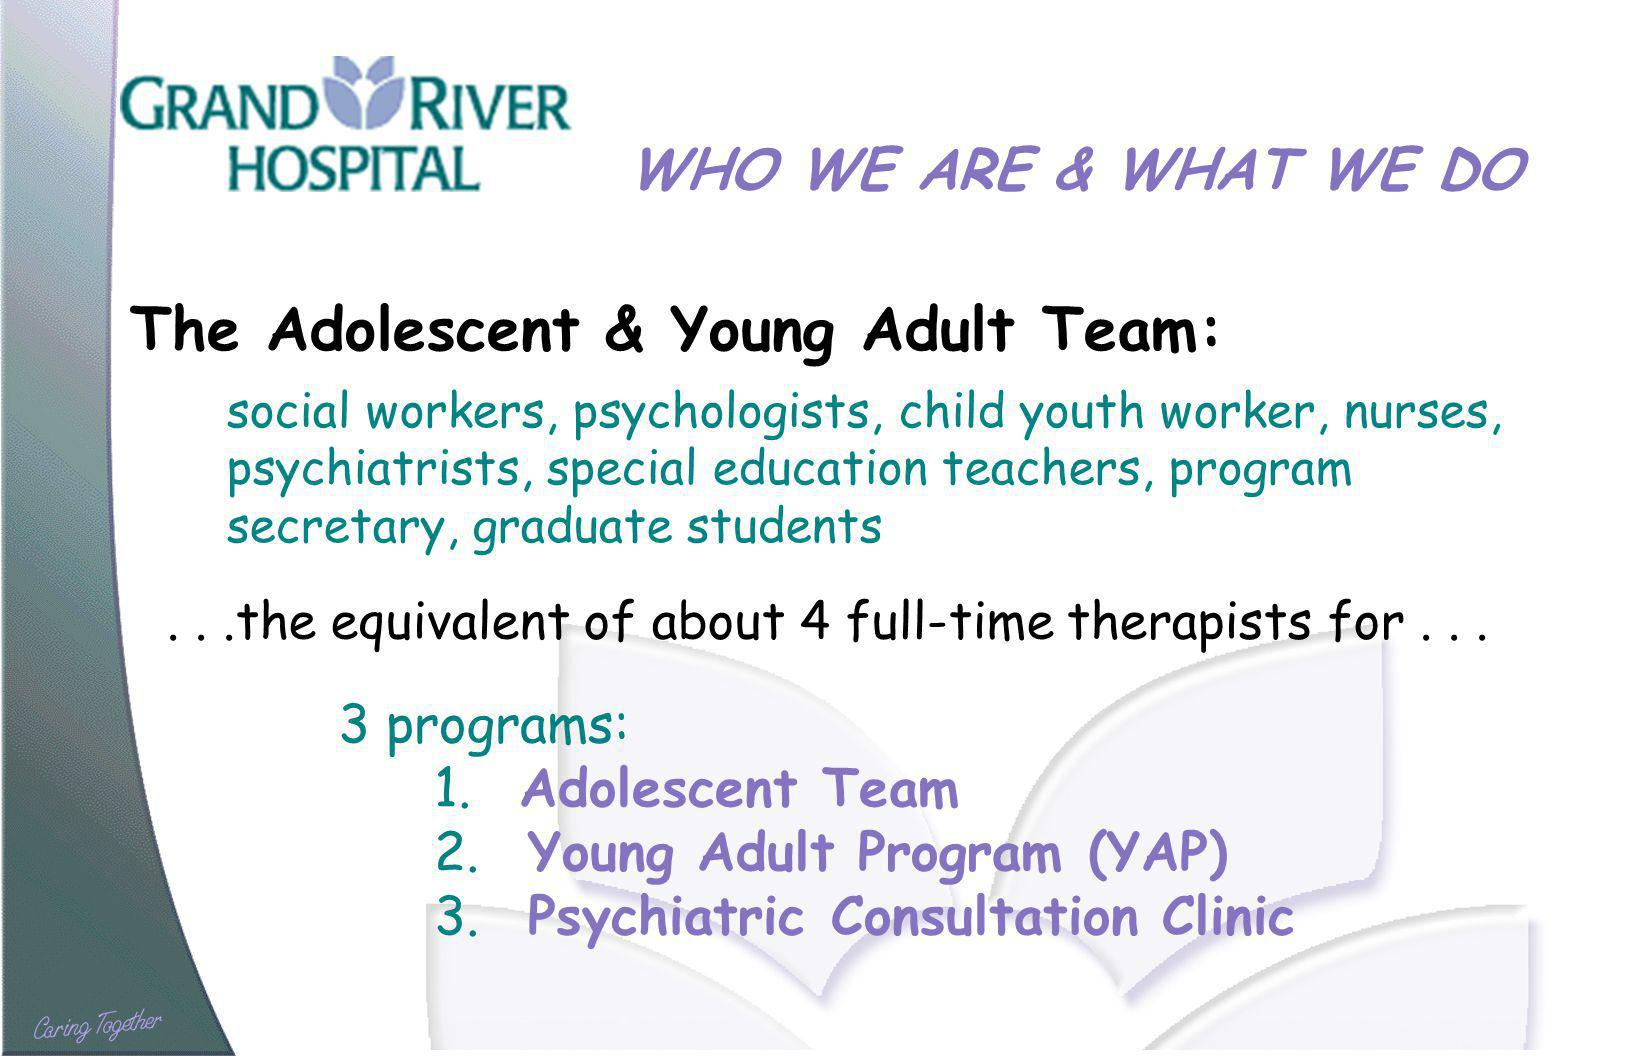 WHO WE ARE & WHAT WE DO The Adolescent & Young Adult Team: social workers, psychologists, child youth worker, nurses, psychiatrists, special education teachers, program secretary, graduate students...the equivalent of about 4 full-time therapists for...